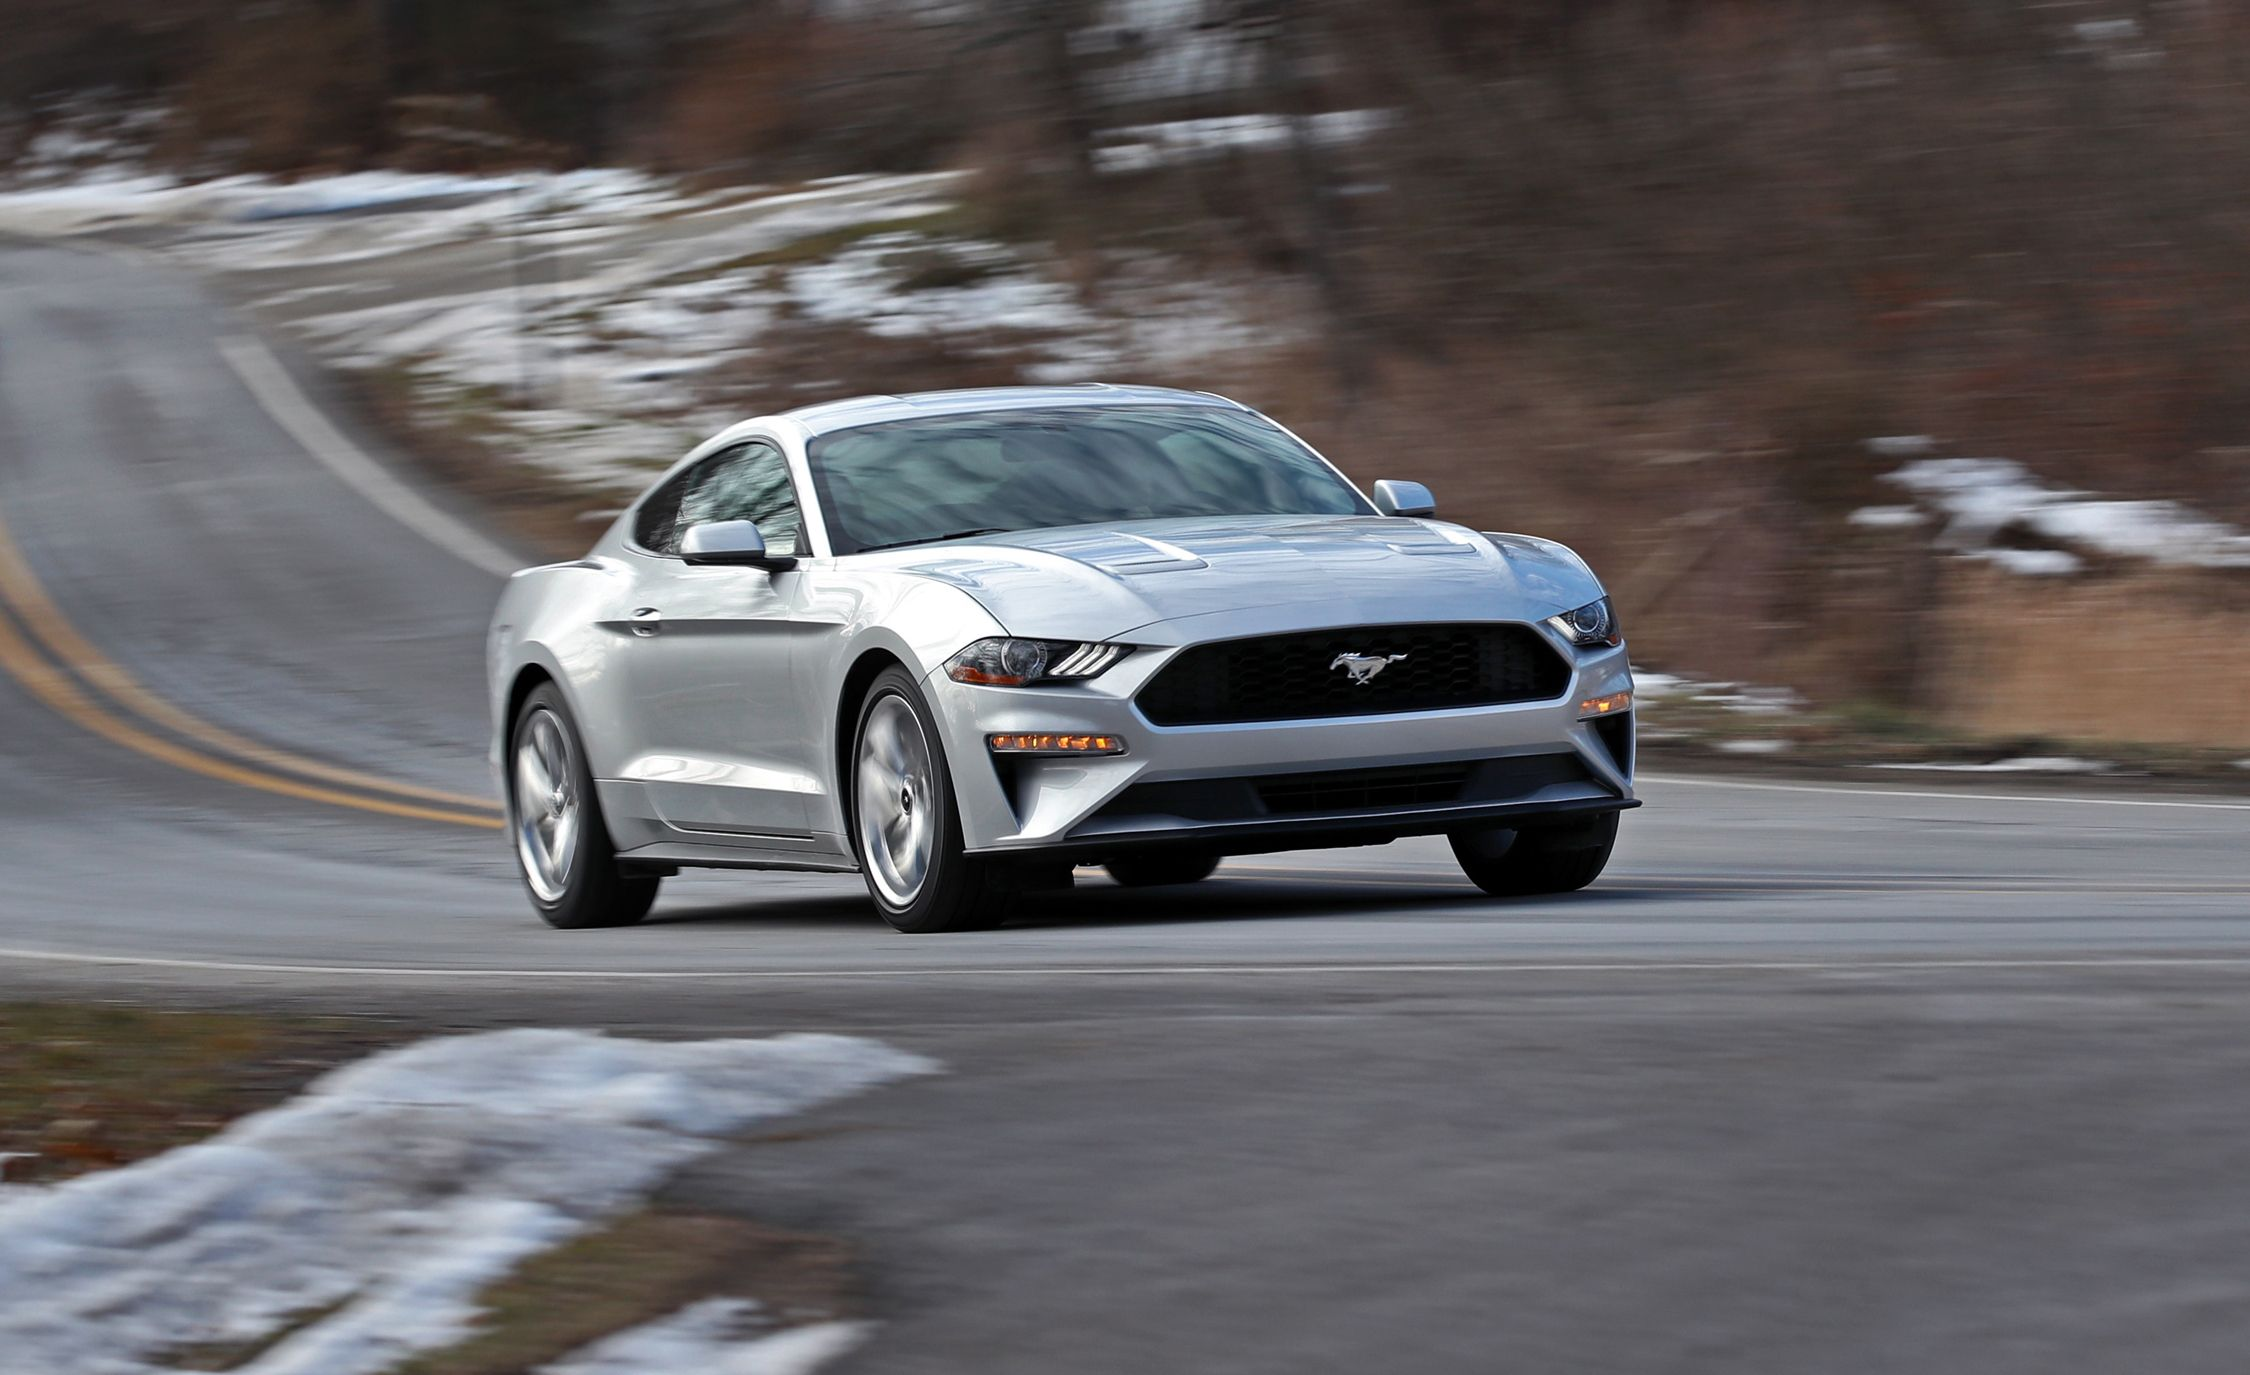 2018 ford mustang 2 3l ecoboost manual test does more torque help rh caranddriver com Top Affordable Turbo Cars 300ZX Twin Turbo Engine